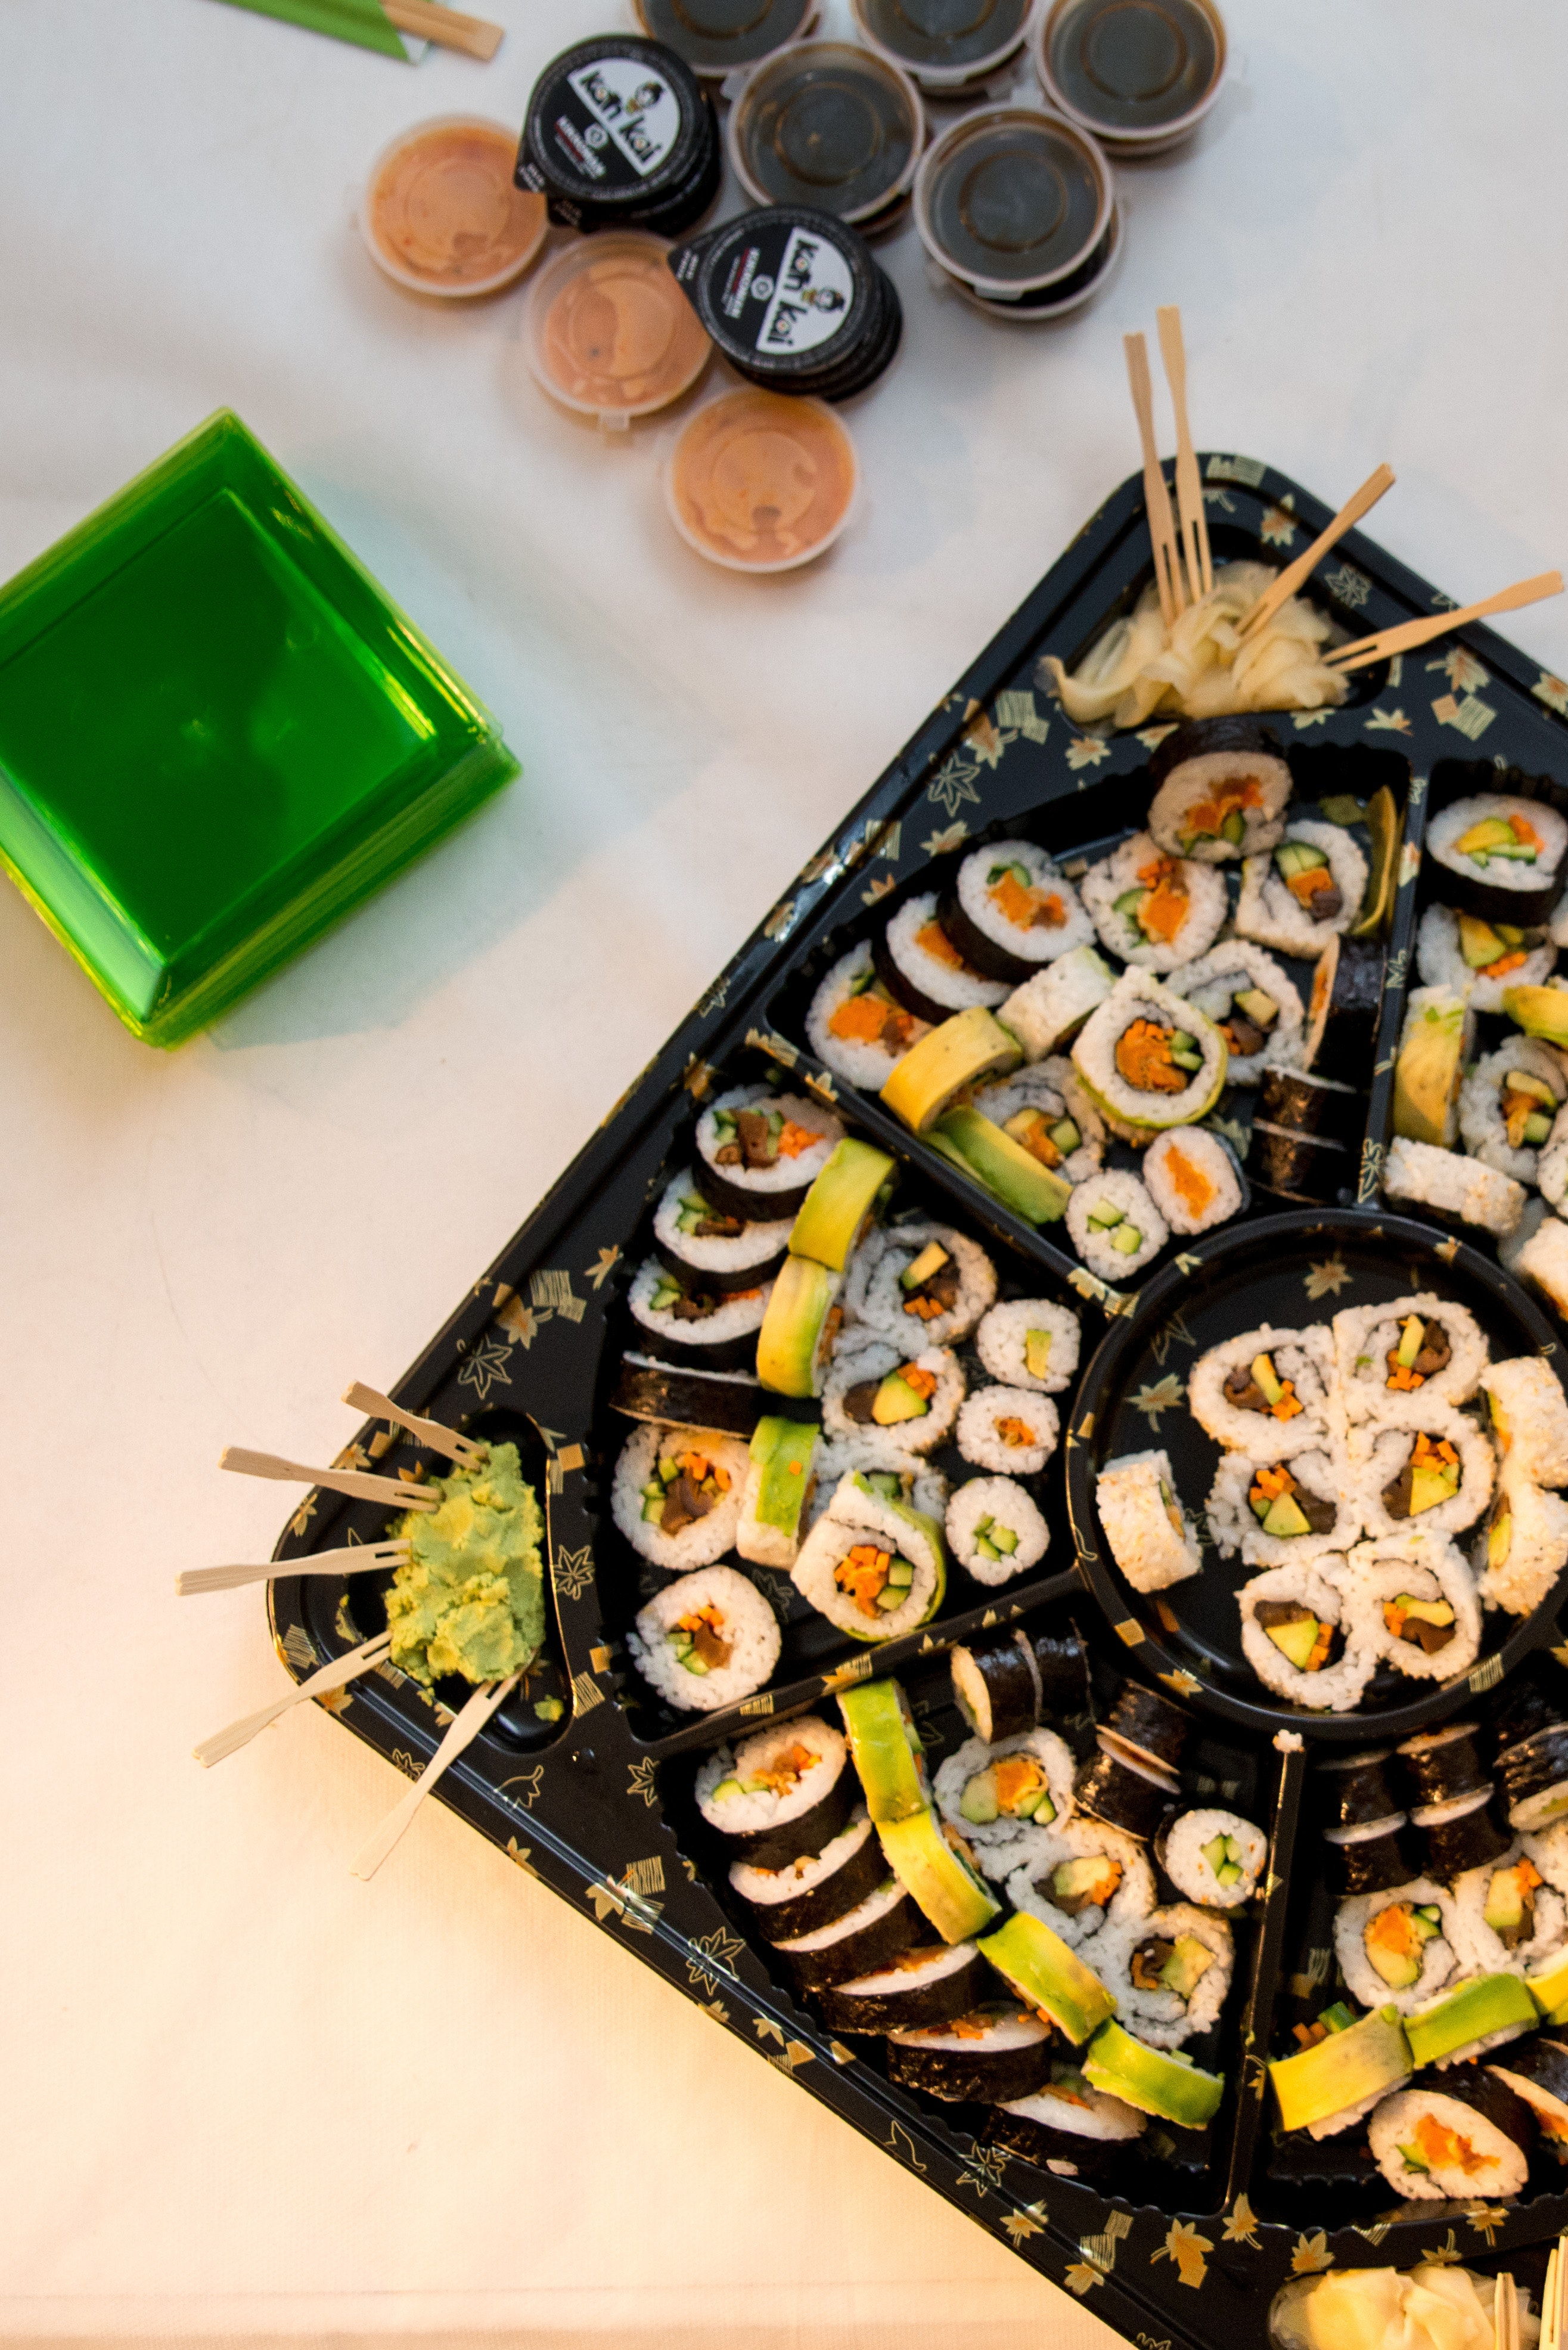 Sushi, Set, Shapes, Plate, Nutrition, HQ Photo